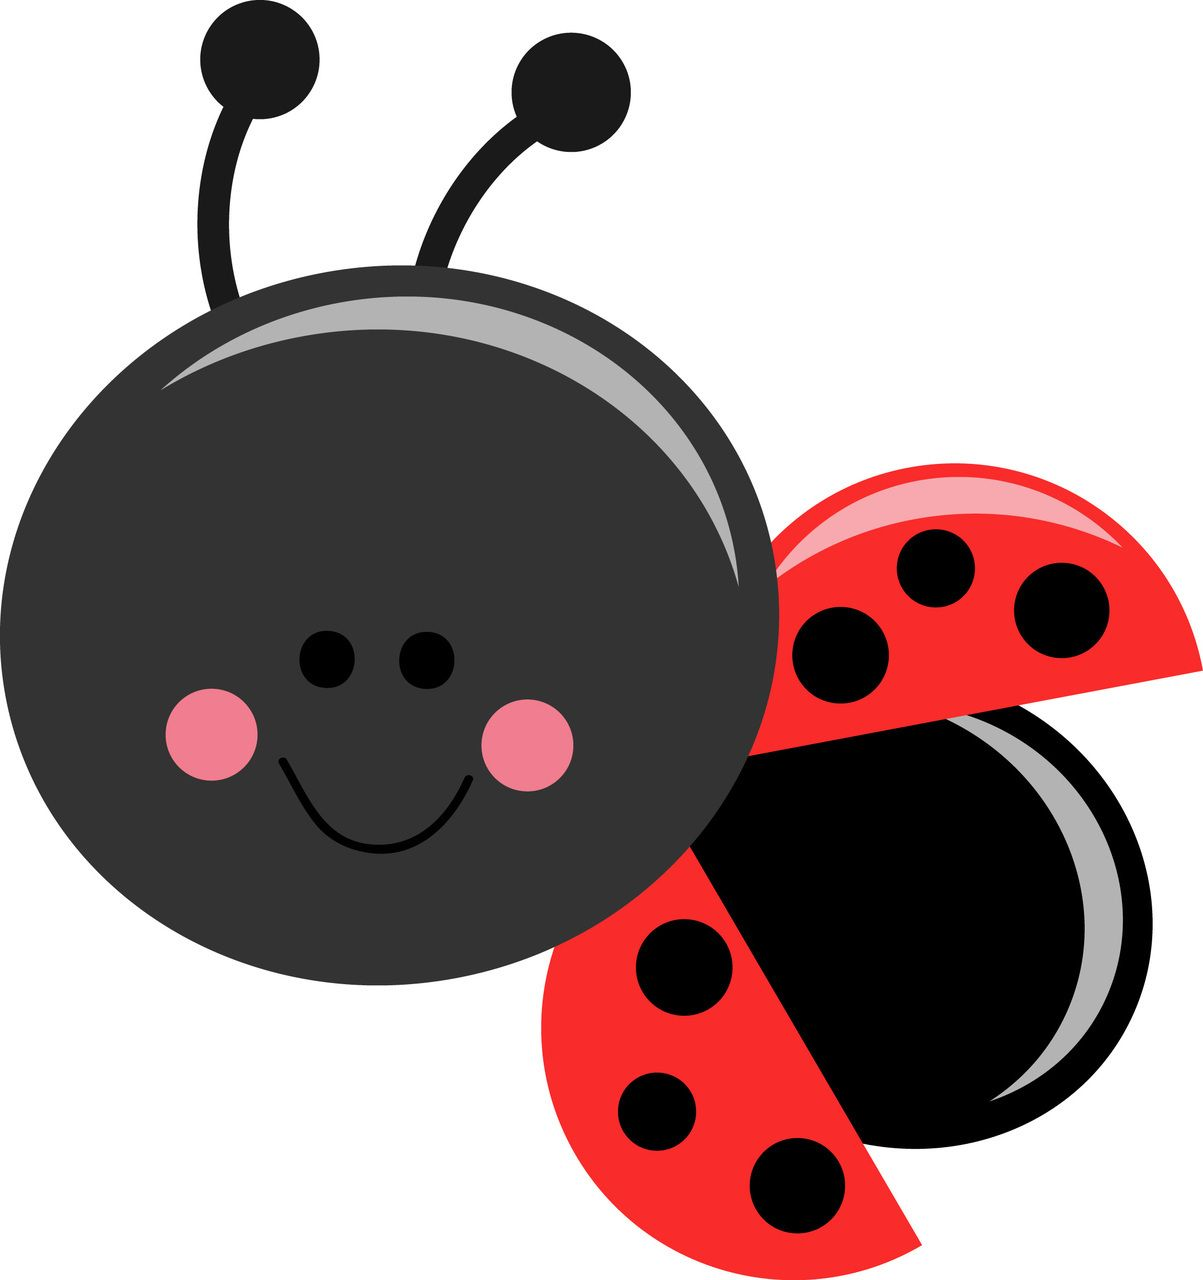 ladybug graphics cute ladybug images free cliparts that you can rh pinterest com au cute cartoon ladybug clipart cute ladybug clipart free